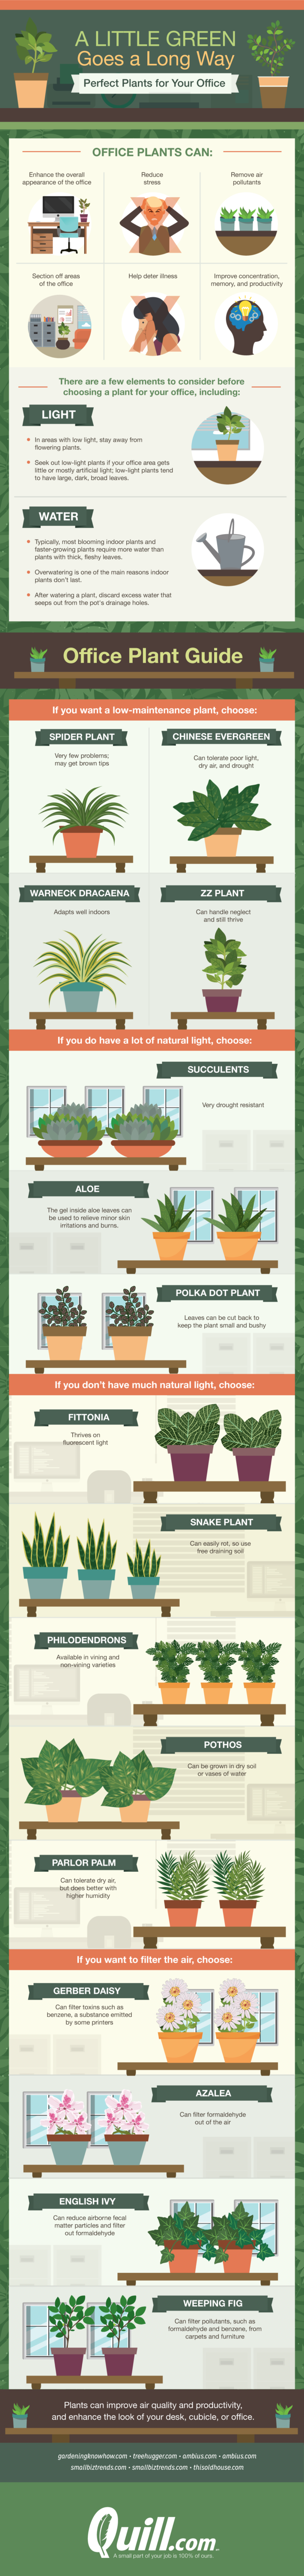 Perfect Office Plants -a little green goes a long way